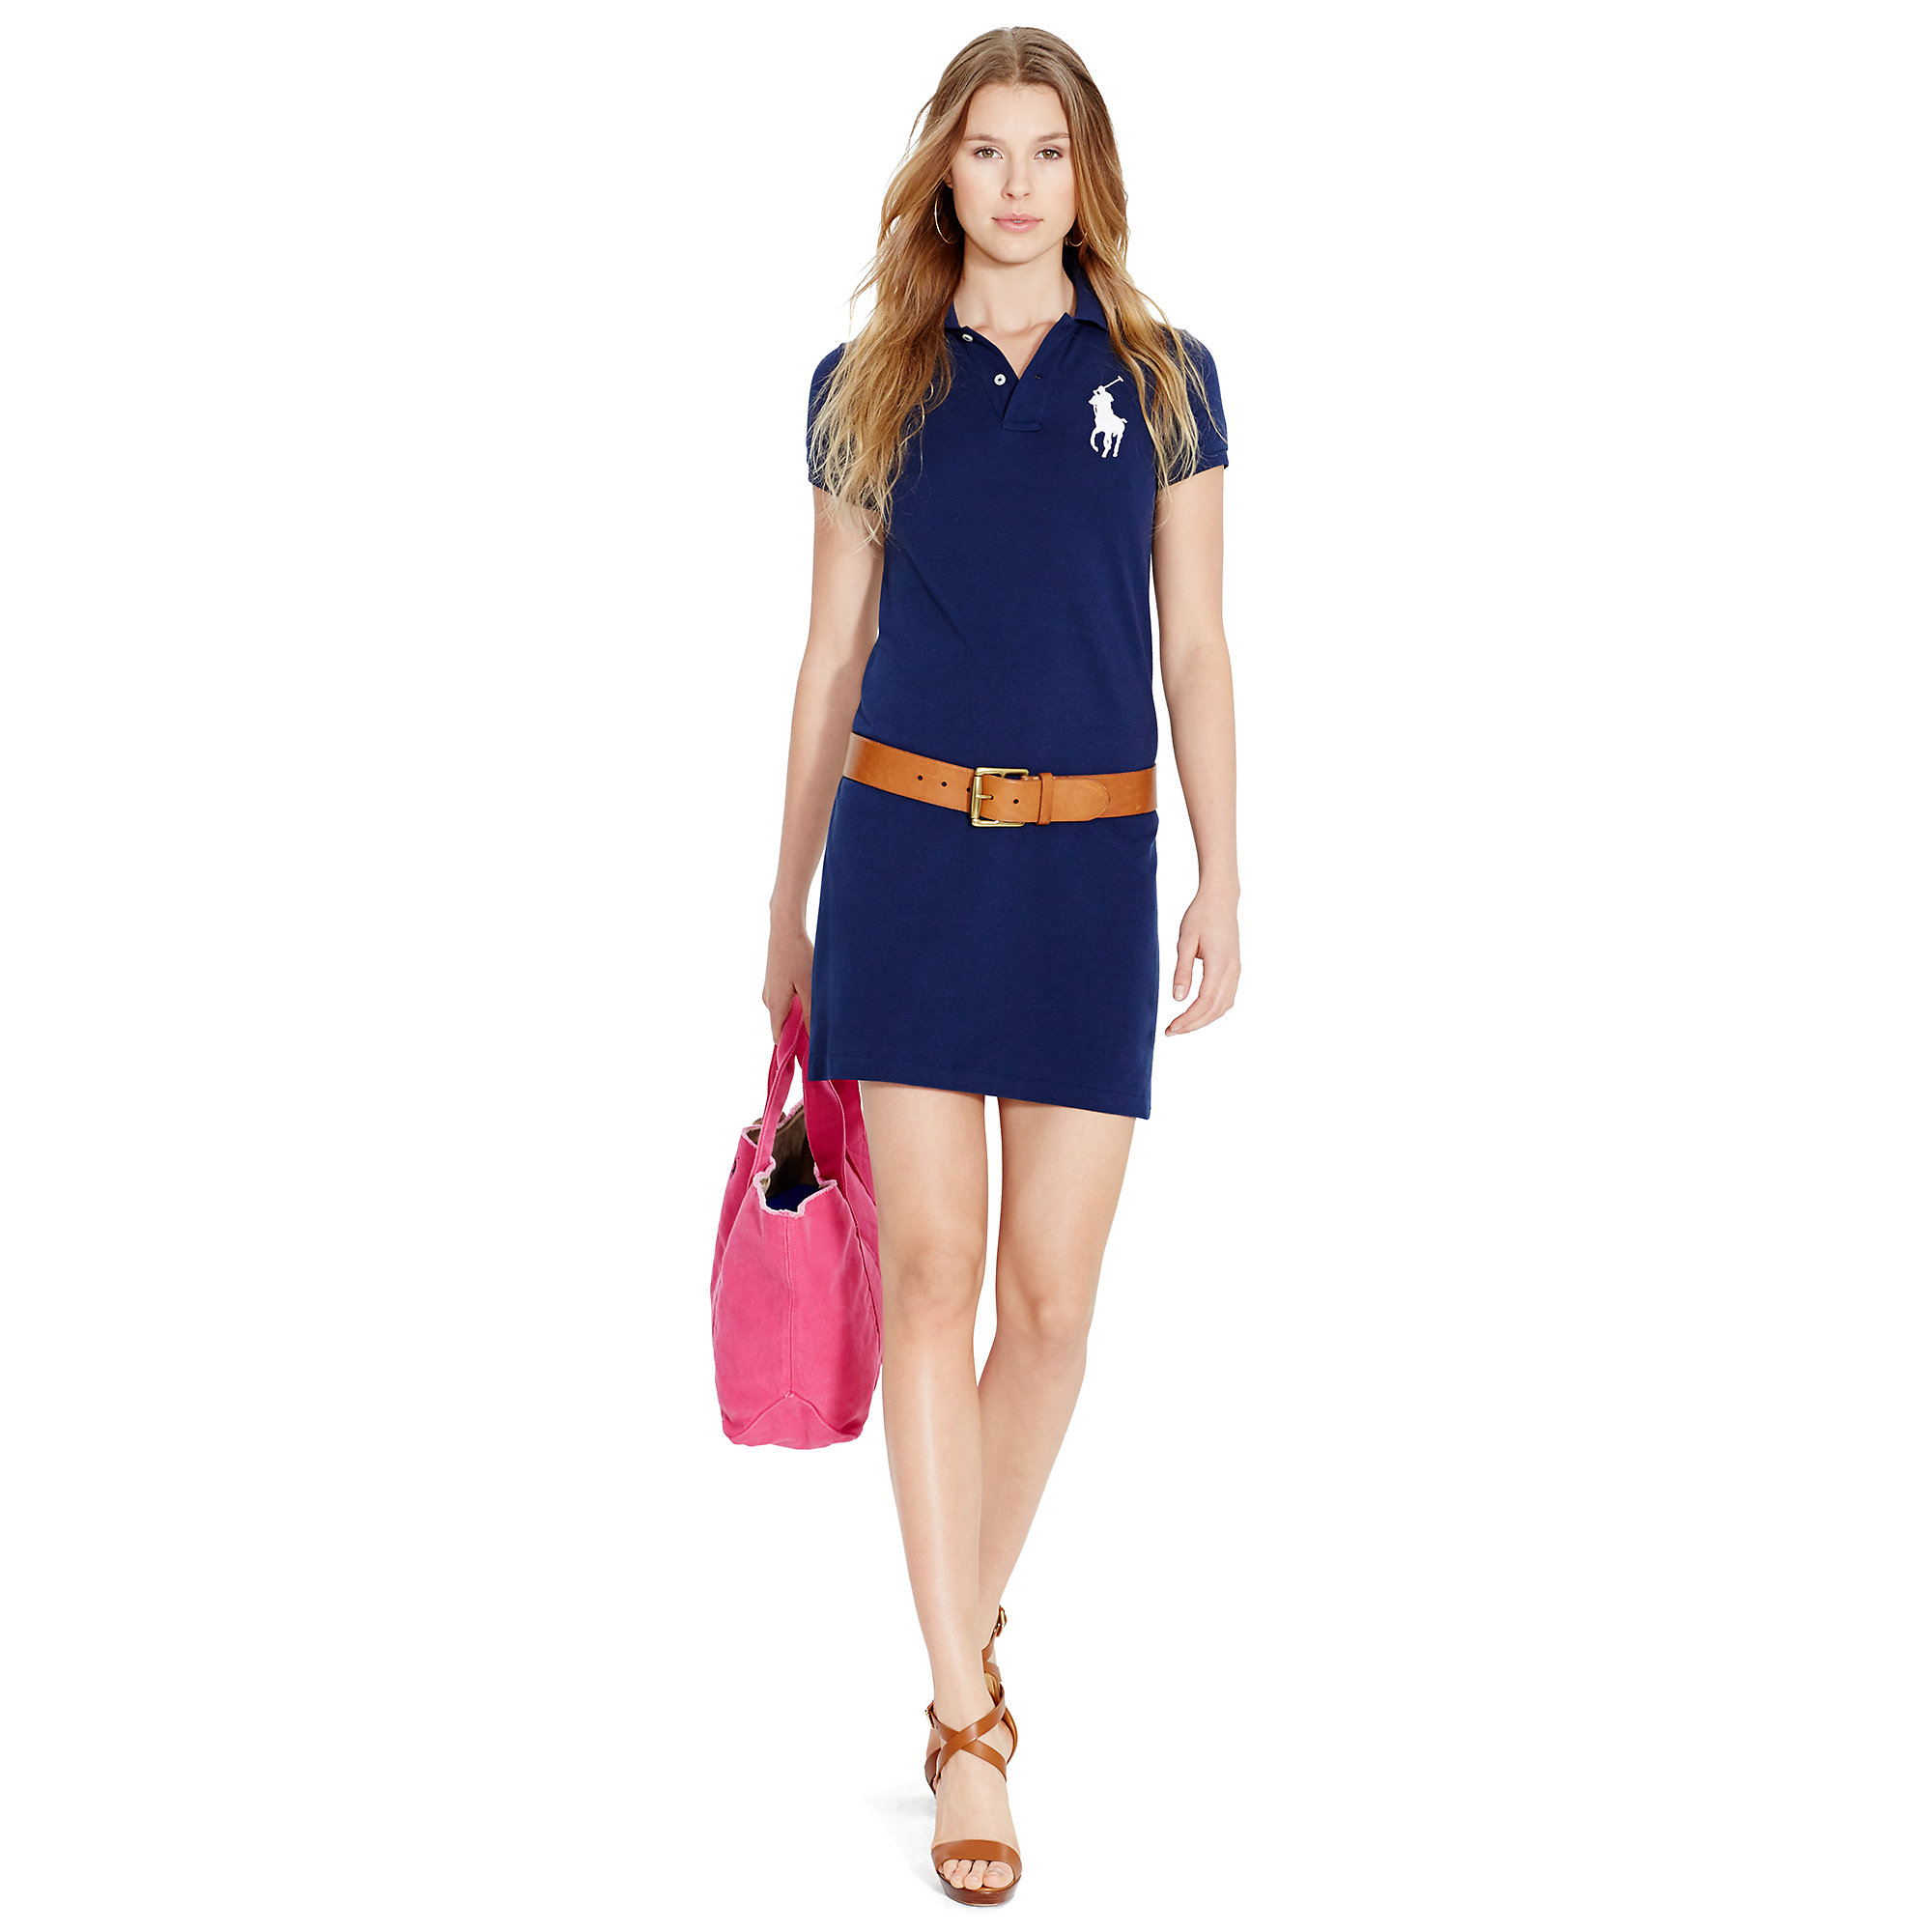 fba63ce402bf4 Lyst - Polo Ralph Lauren Big Pony Mini Shirtdress in Blue